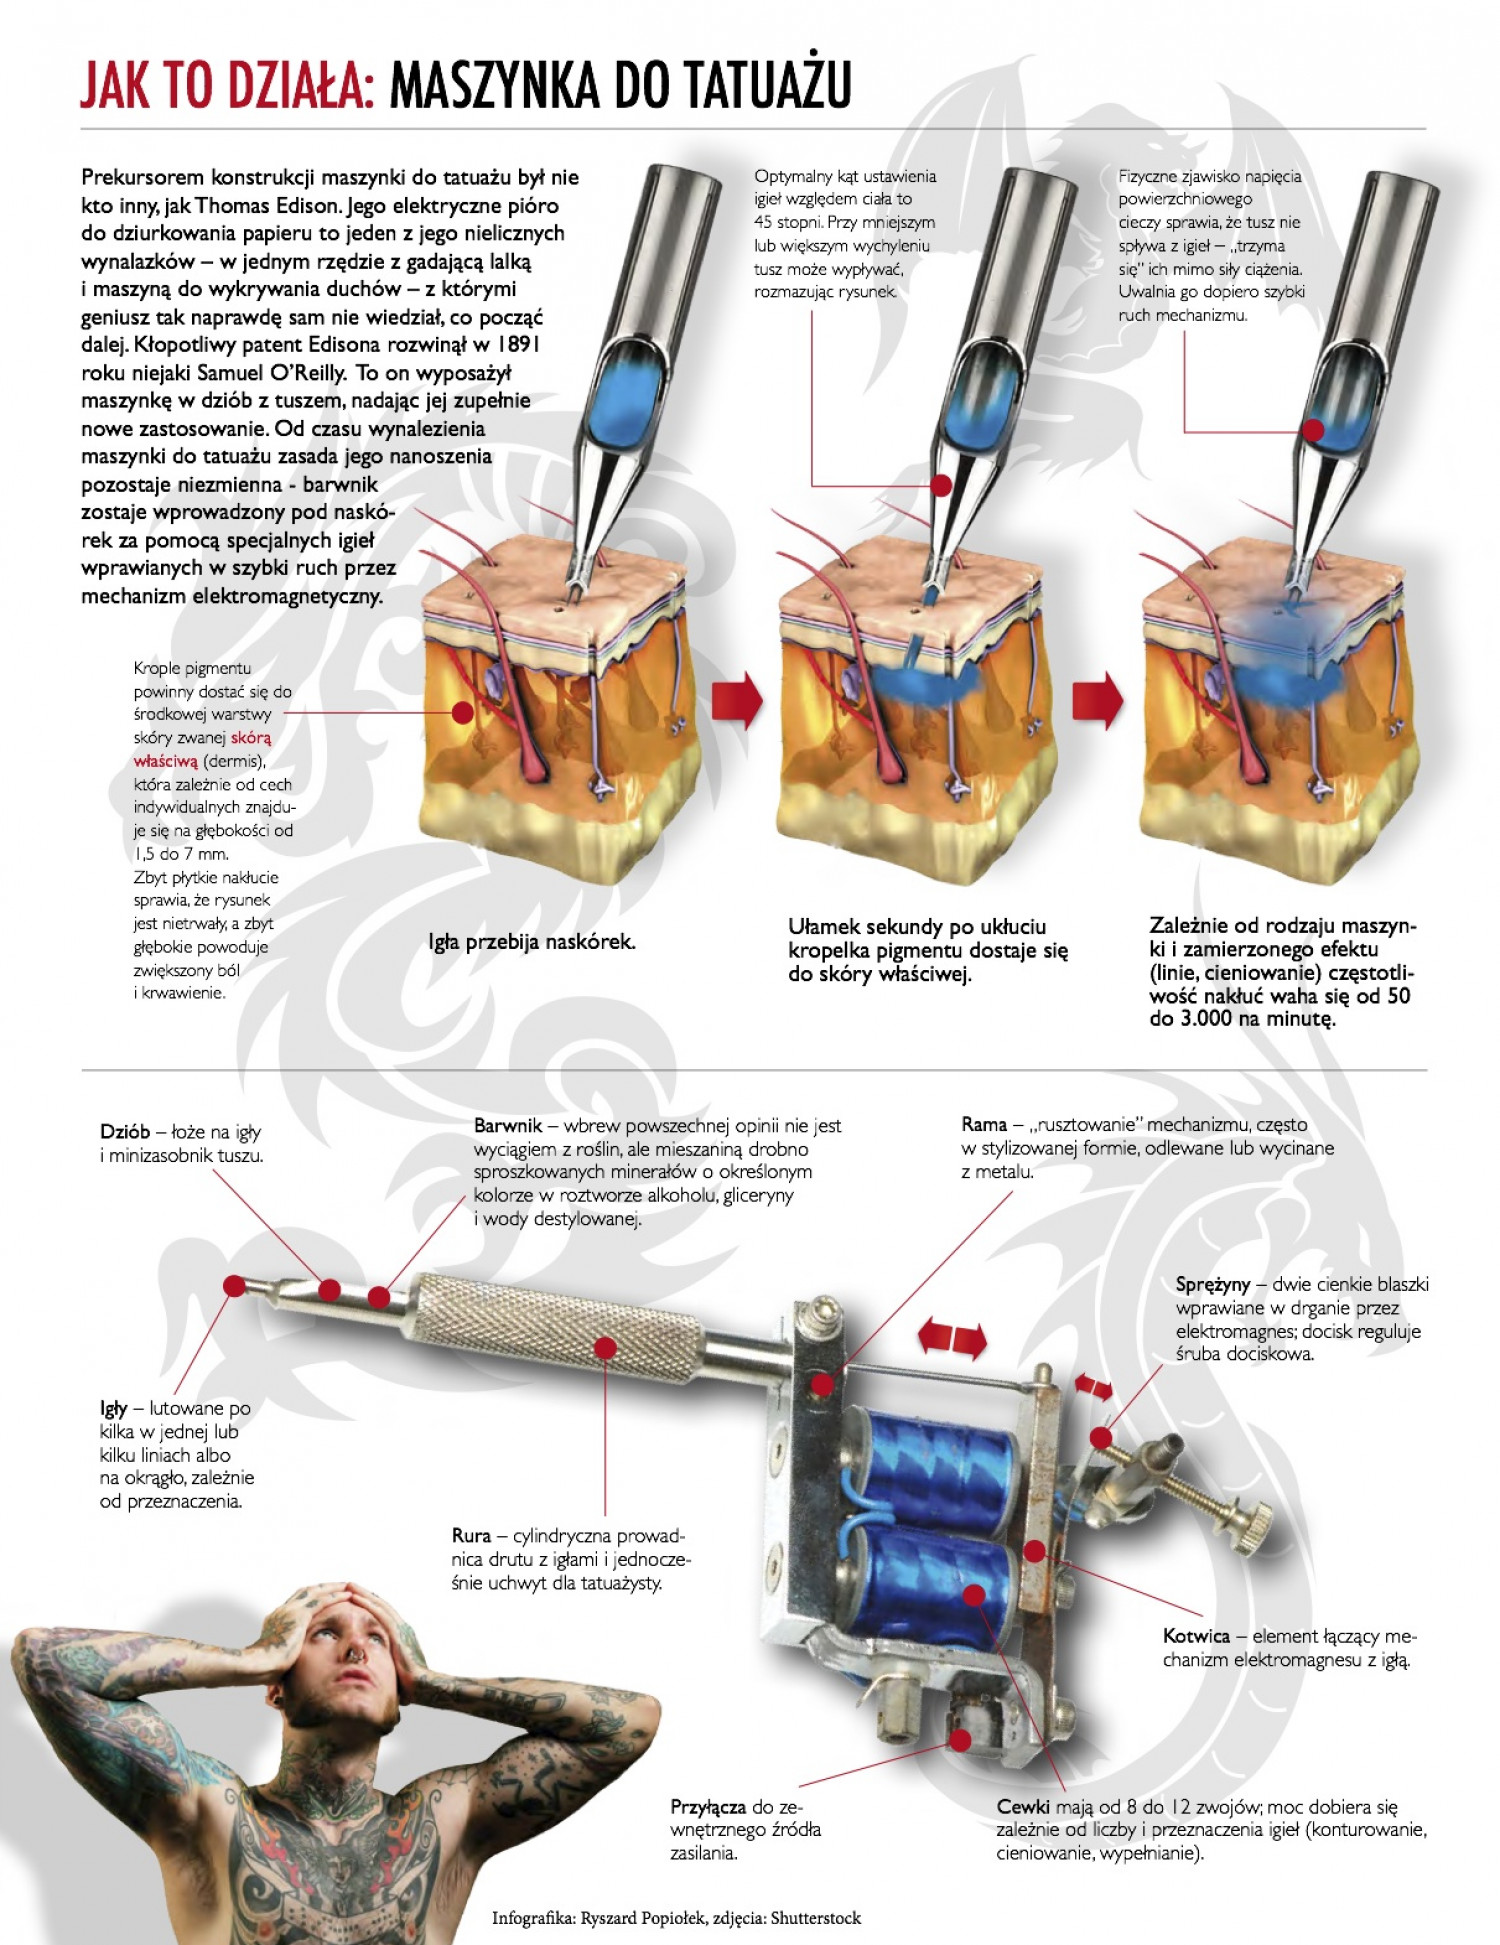 How it works: Tattoo machine | Visual.ly